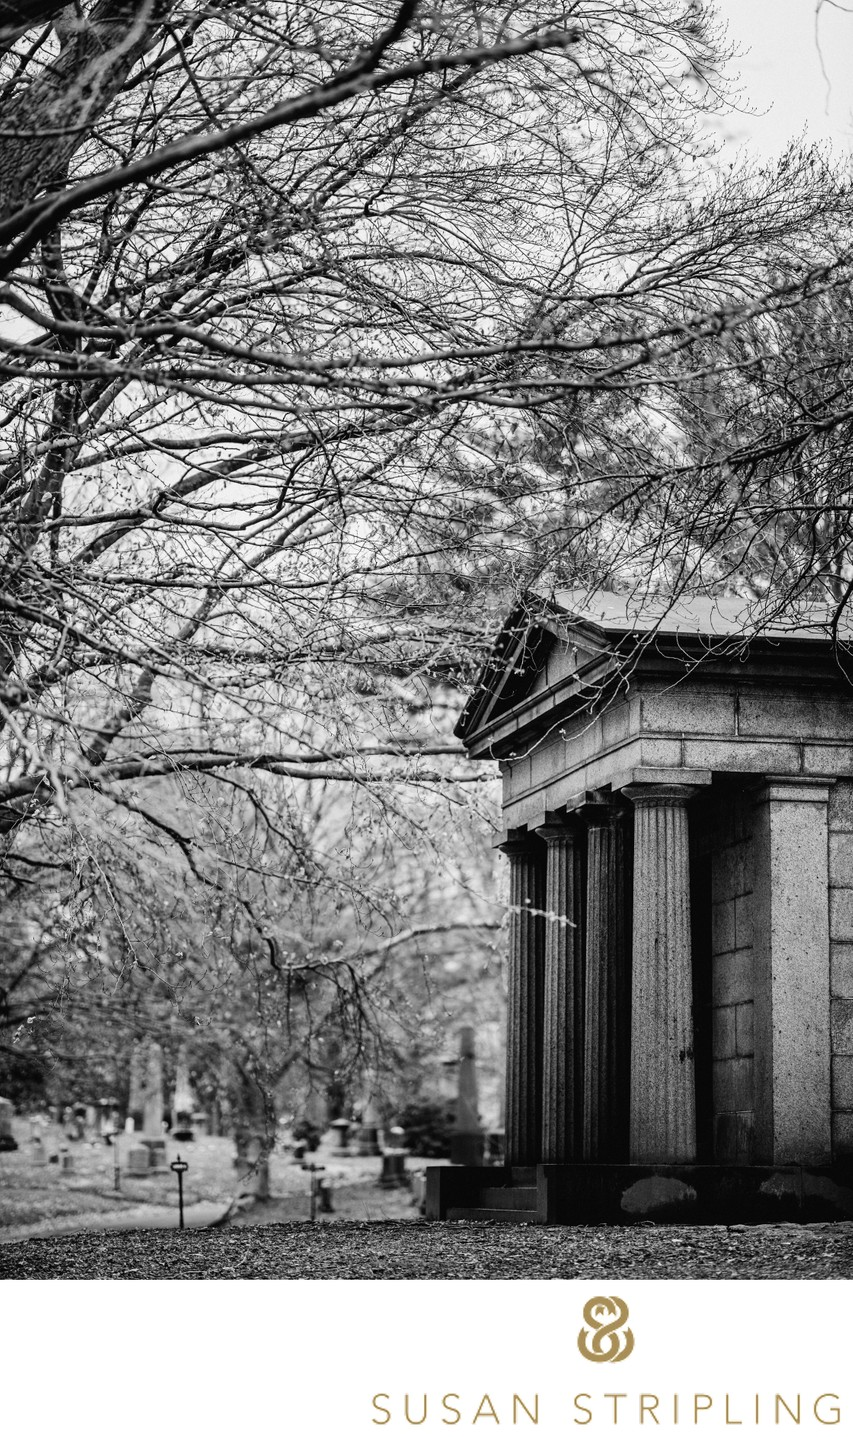 Green-Wood Cemetery Brooklyn Mausoleum Picture